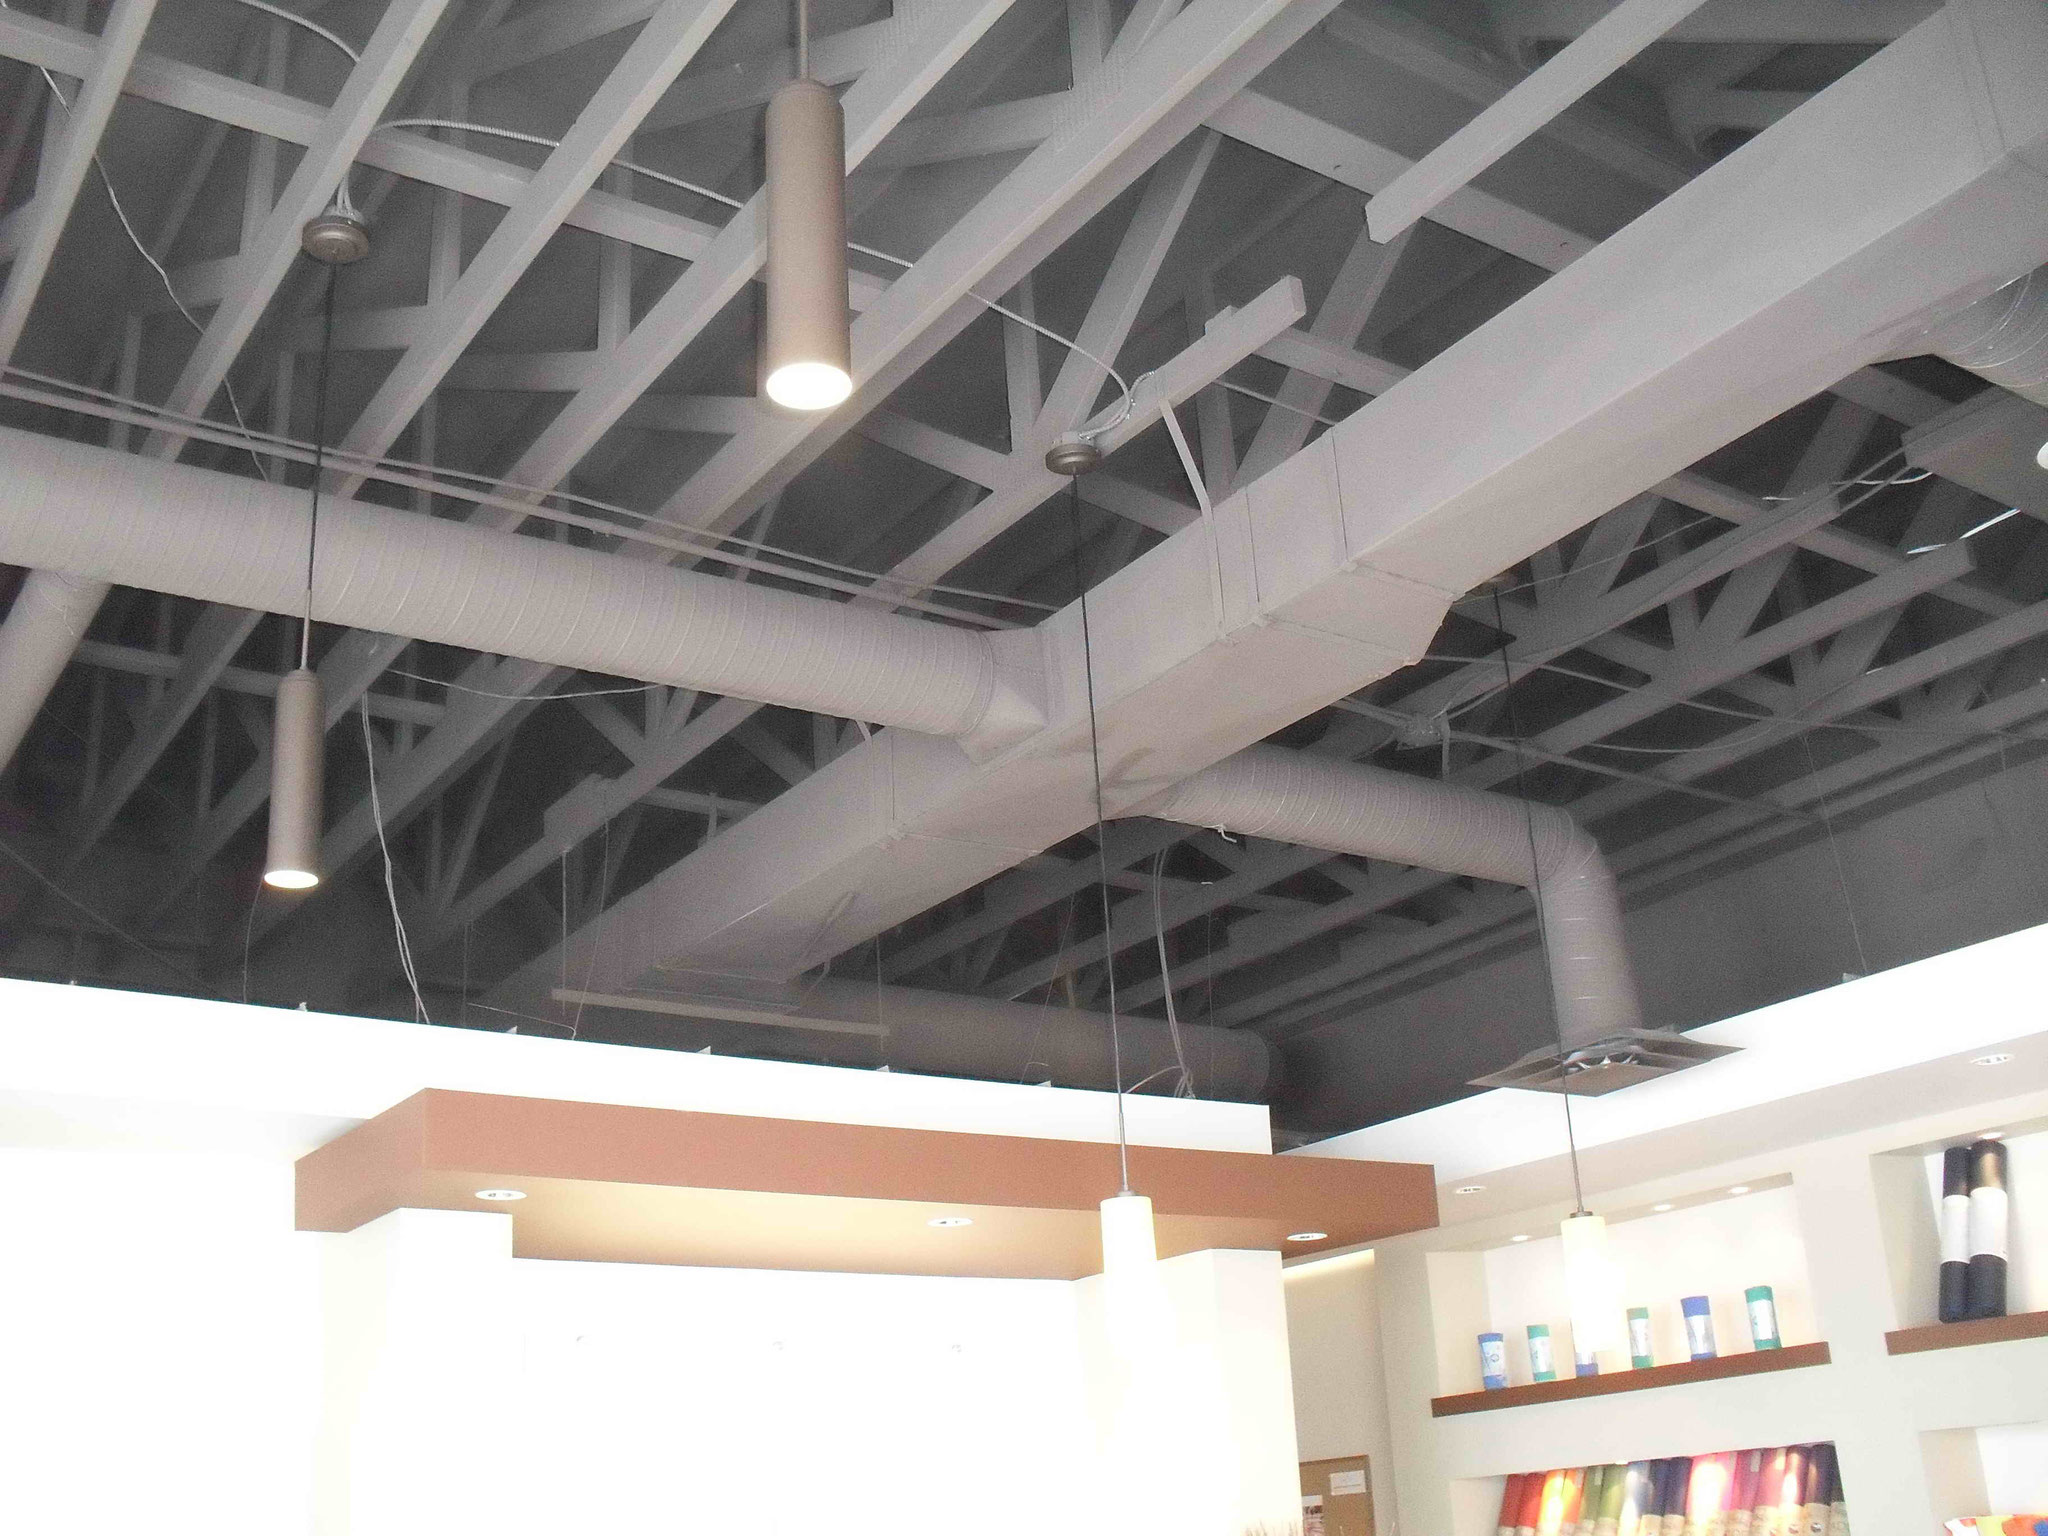 Ceiling Space in Need of Sound Absorbing Treatment